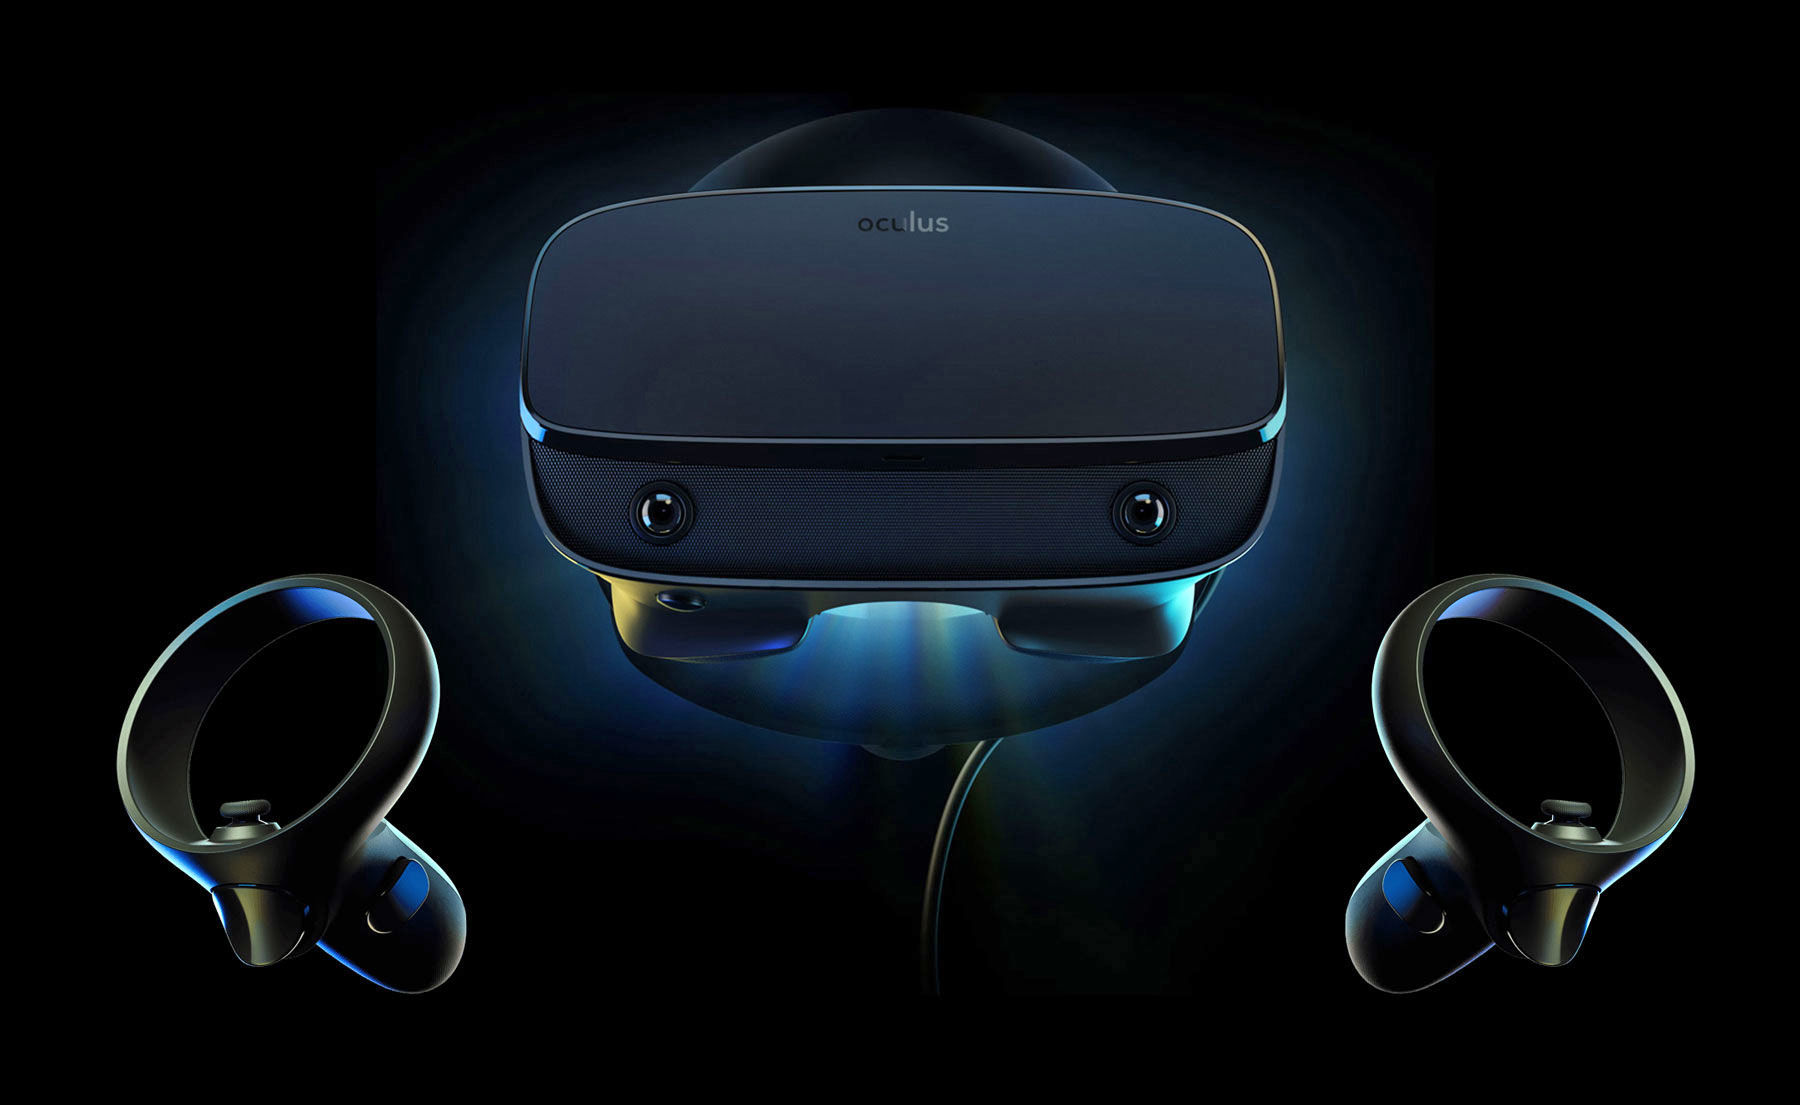 Oculus has unveiled a new virtual reality headset Rift S